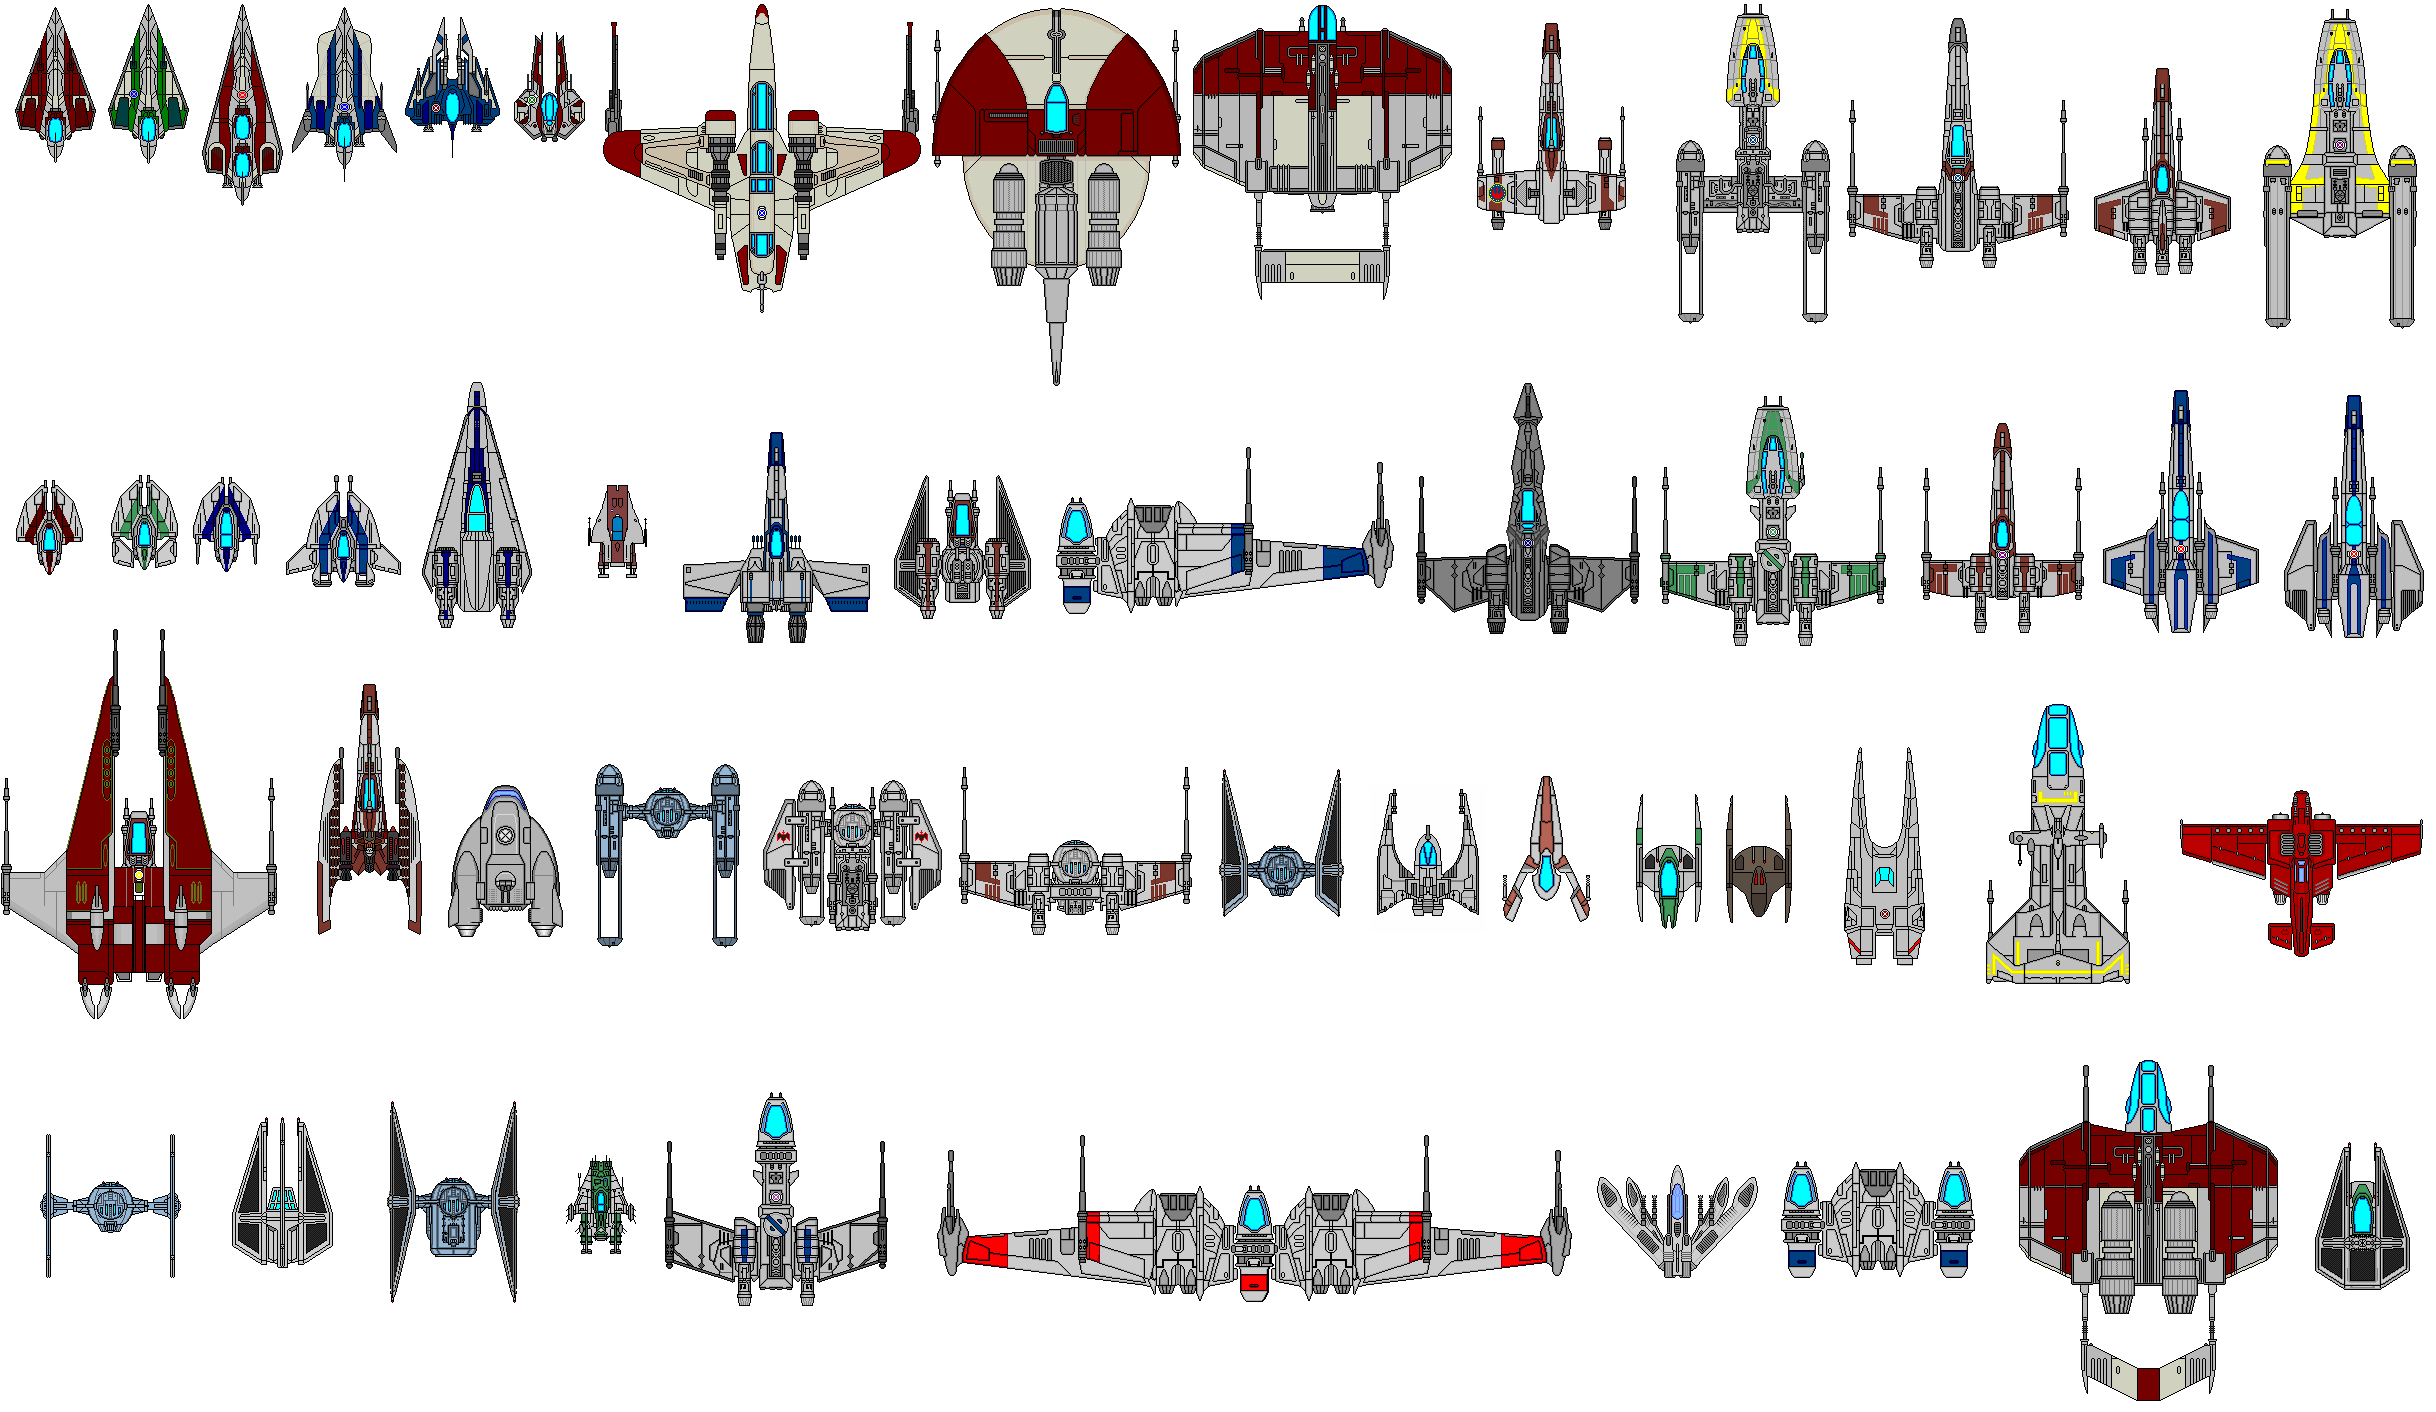 Souvent Star Wars starfighters by kavinveldar on DeviantArt QV66